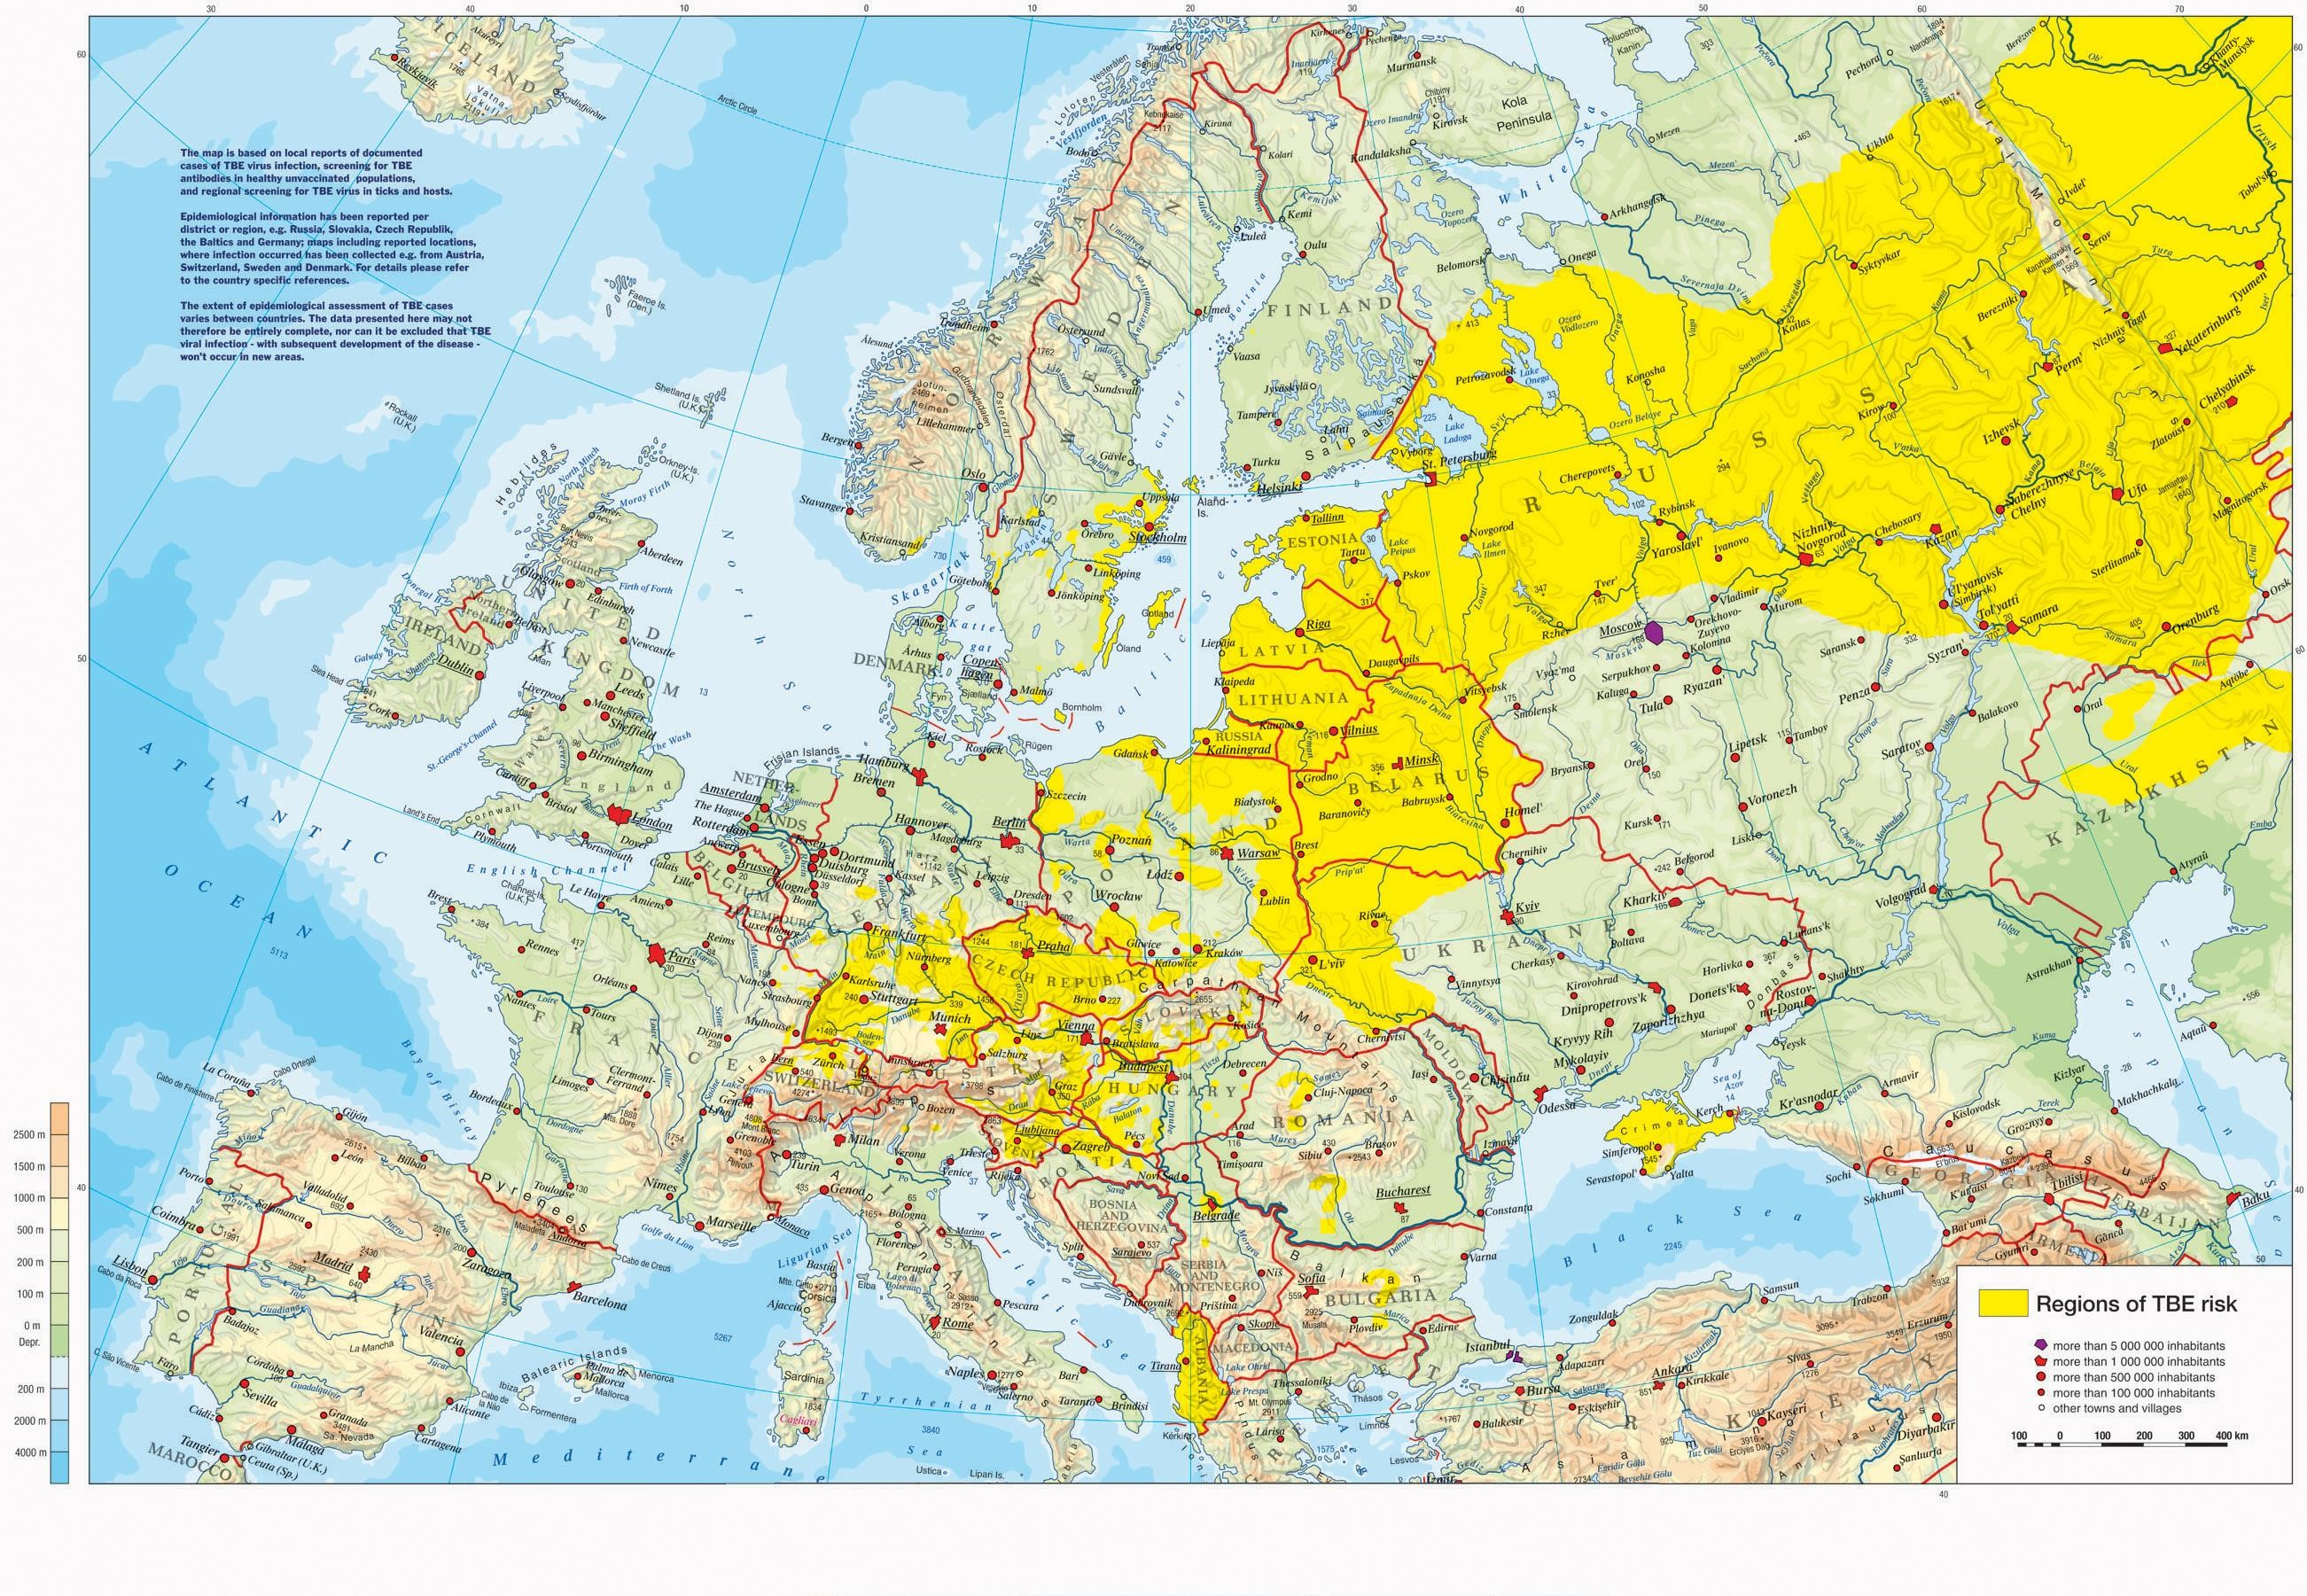 Incidents-of-Tick-Borne-Encephalitis-in-Europe-East-Asia-and-Russia-Map.jpg